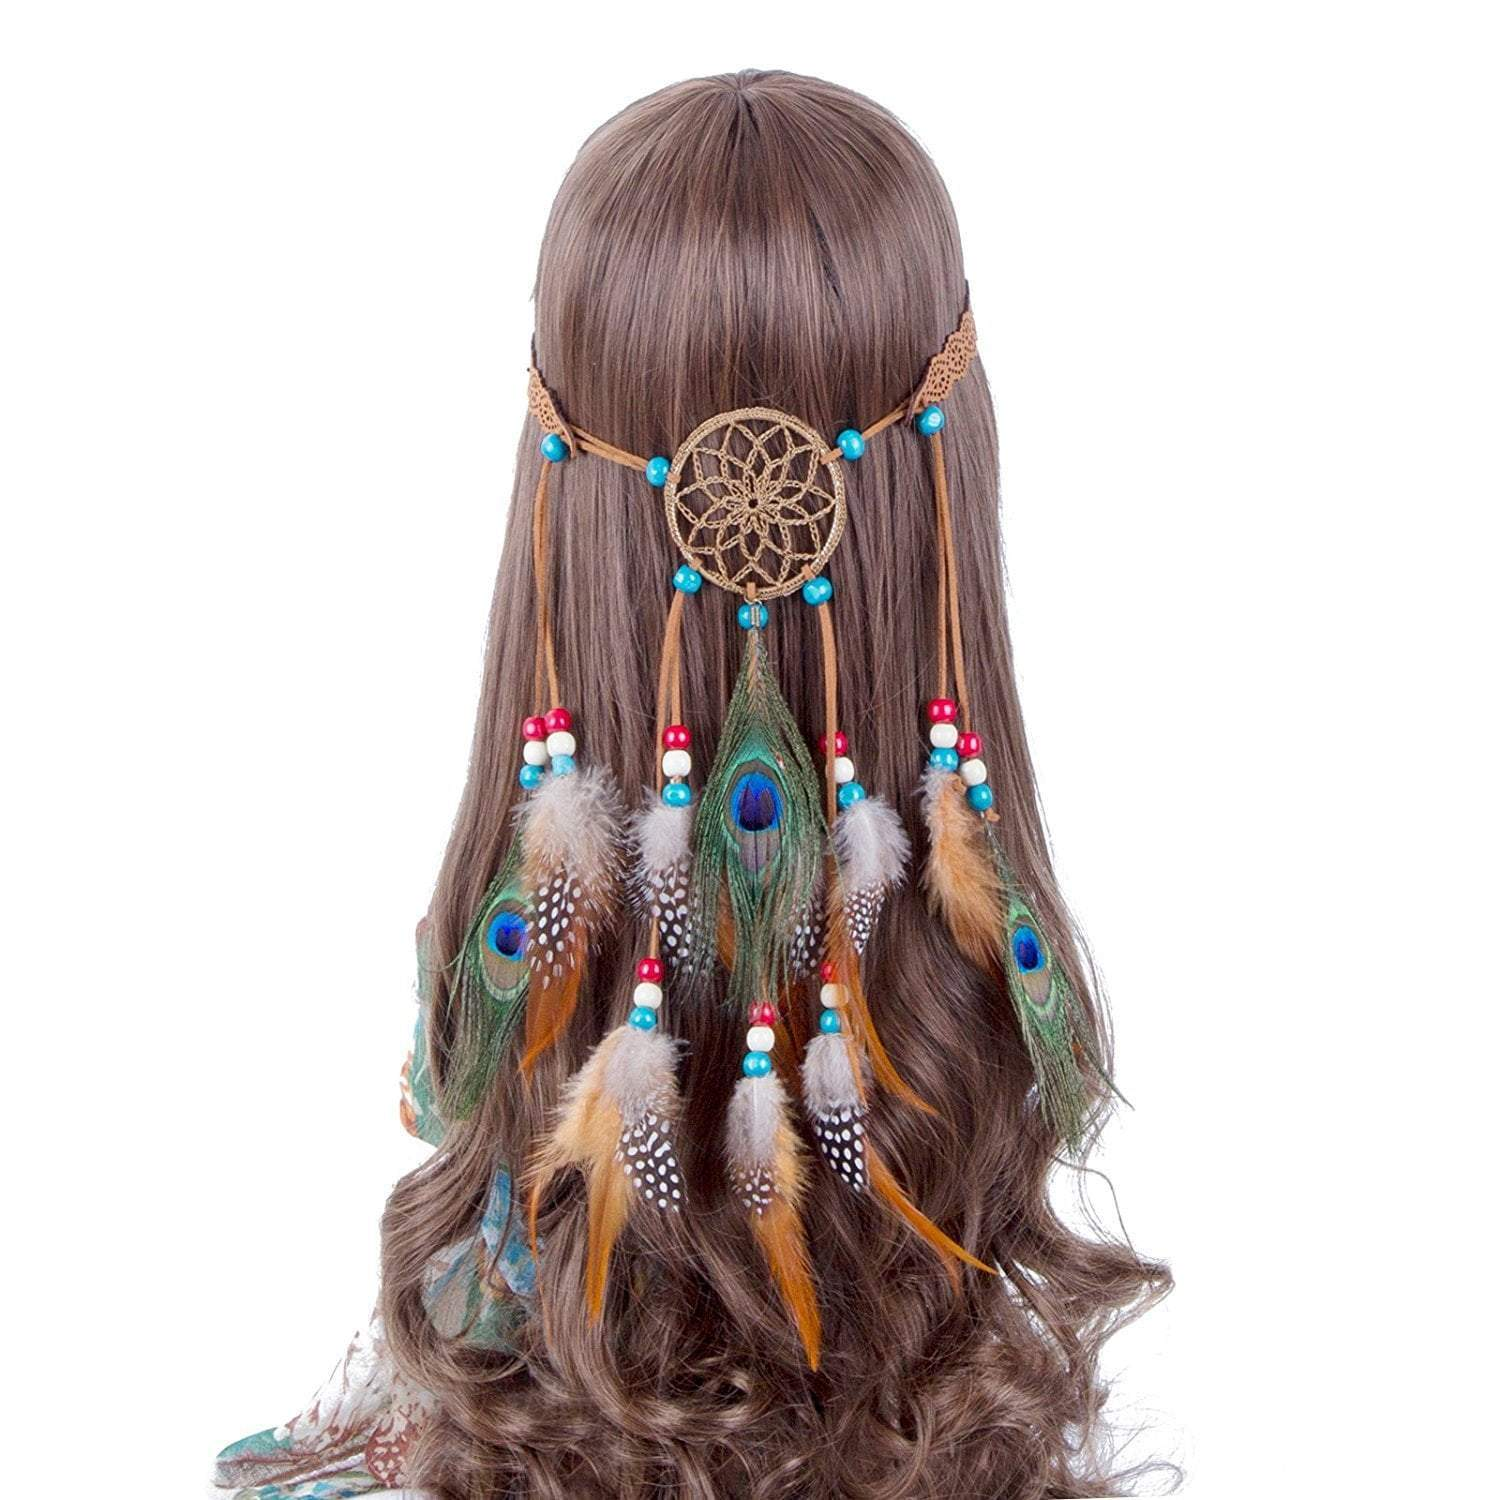 Native American Native American Dream Catcher Tiara